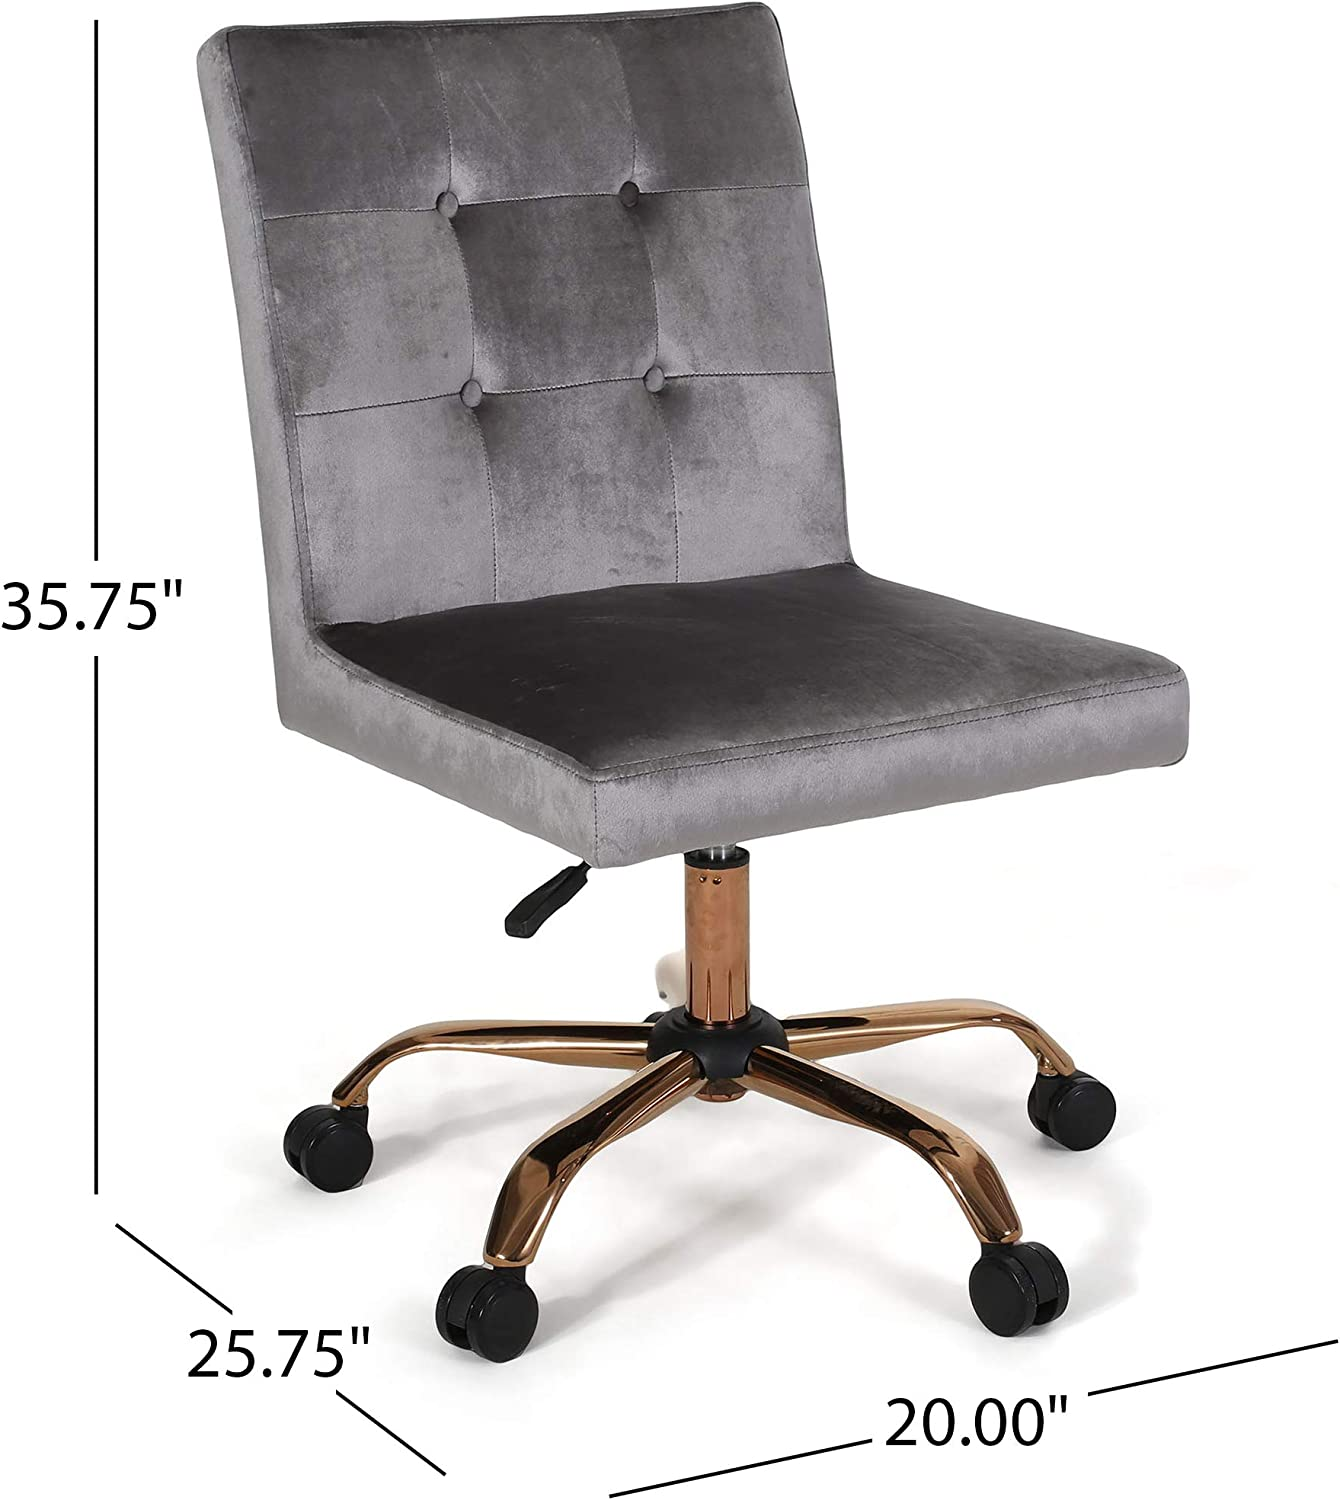 Amazon Com Theodore Glam Tufted Home Office Chair With Swivel Base Smoke And Rose Gold Finish Office Products